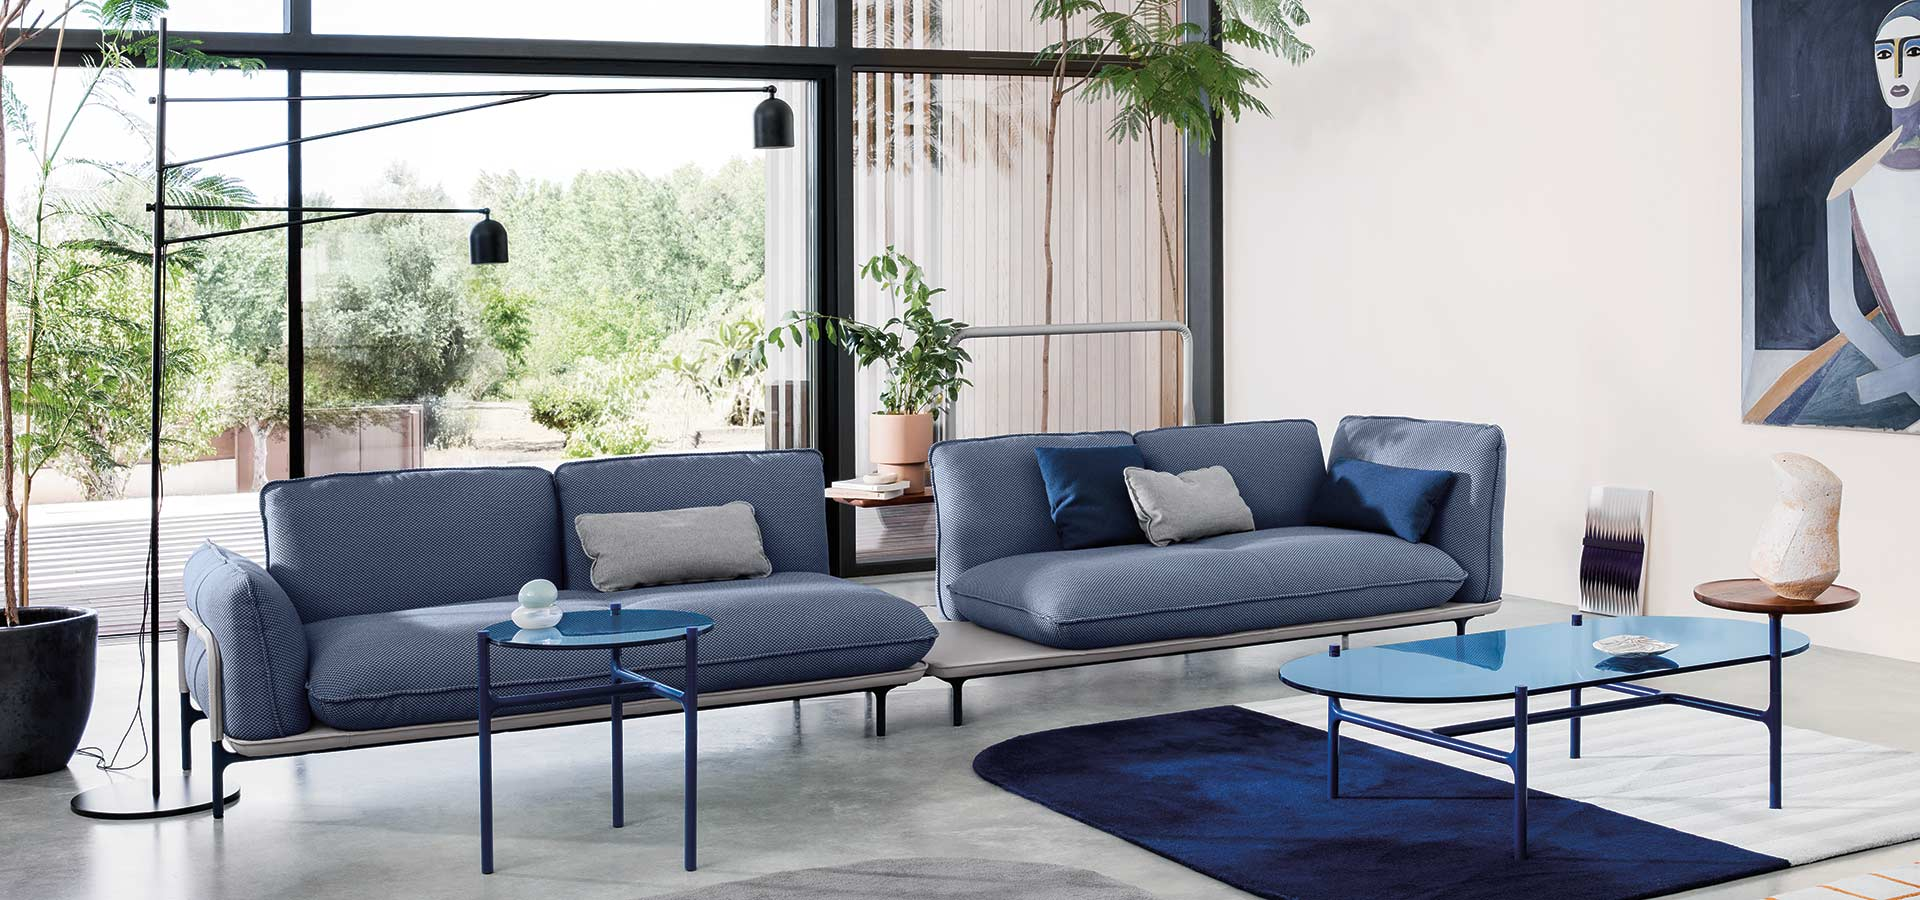 Rolf Benz Sofa Addit